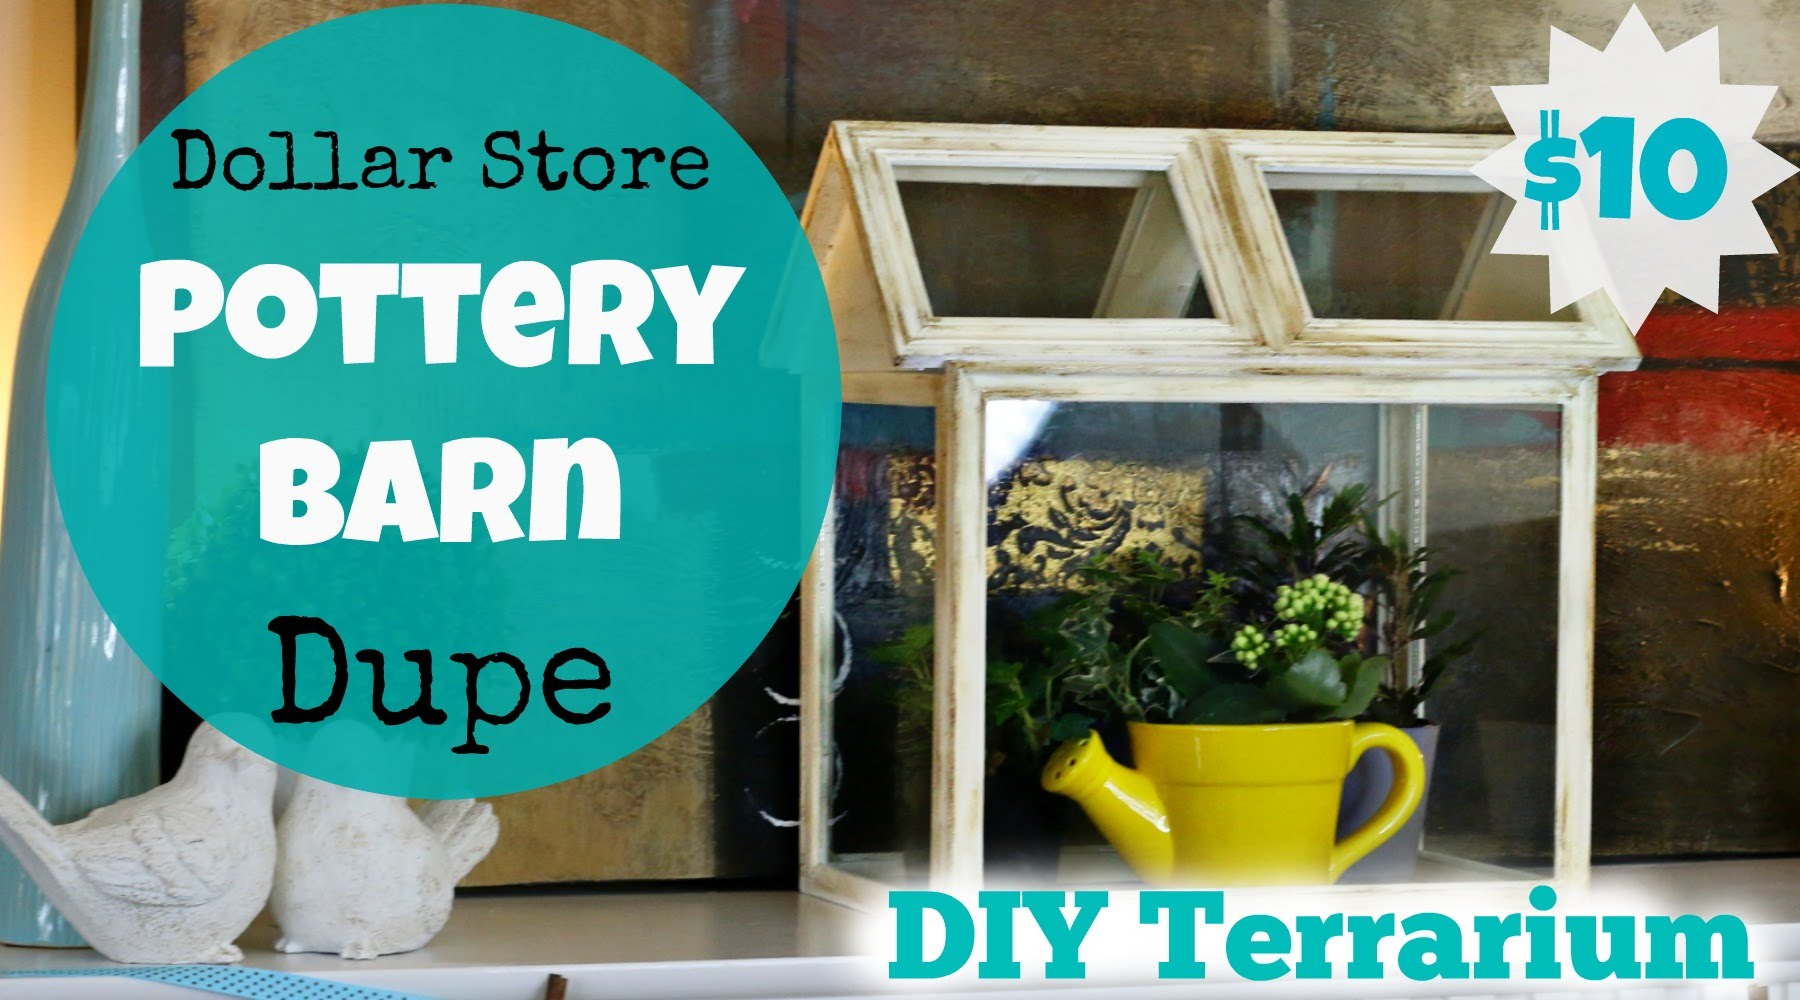 DIY Terrarium Ideas - DIY Pottery Barn Terrarium - Cool Terrariums and Crafts With Mason Jars, Succulents, Wood, Geometric Designs and Reptile, Acquarium - Easy DIY Terrariums for Adults and Kids To Make at Home